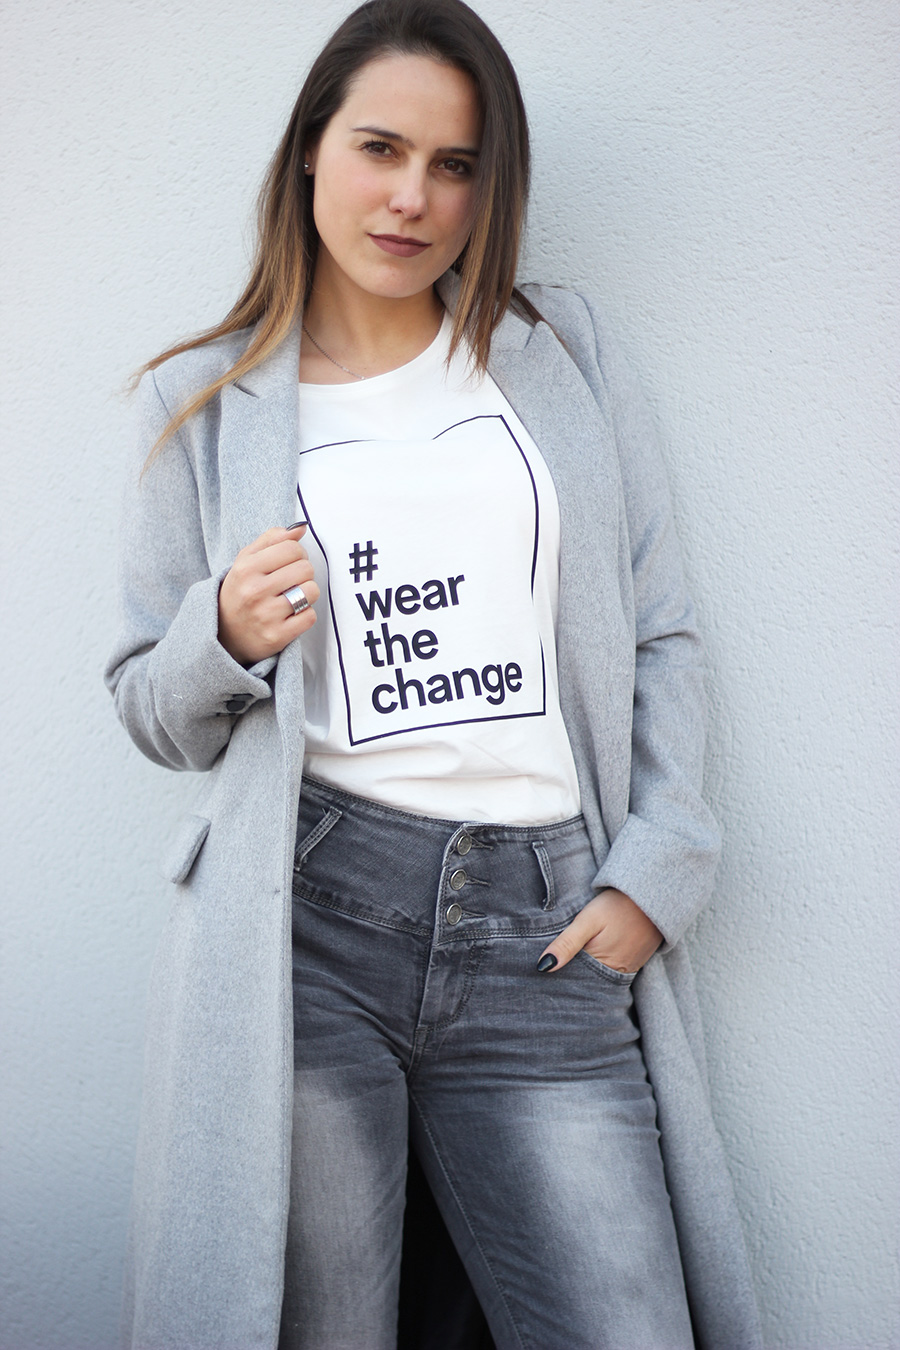 Wear The Change C&A